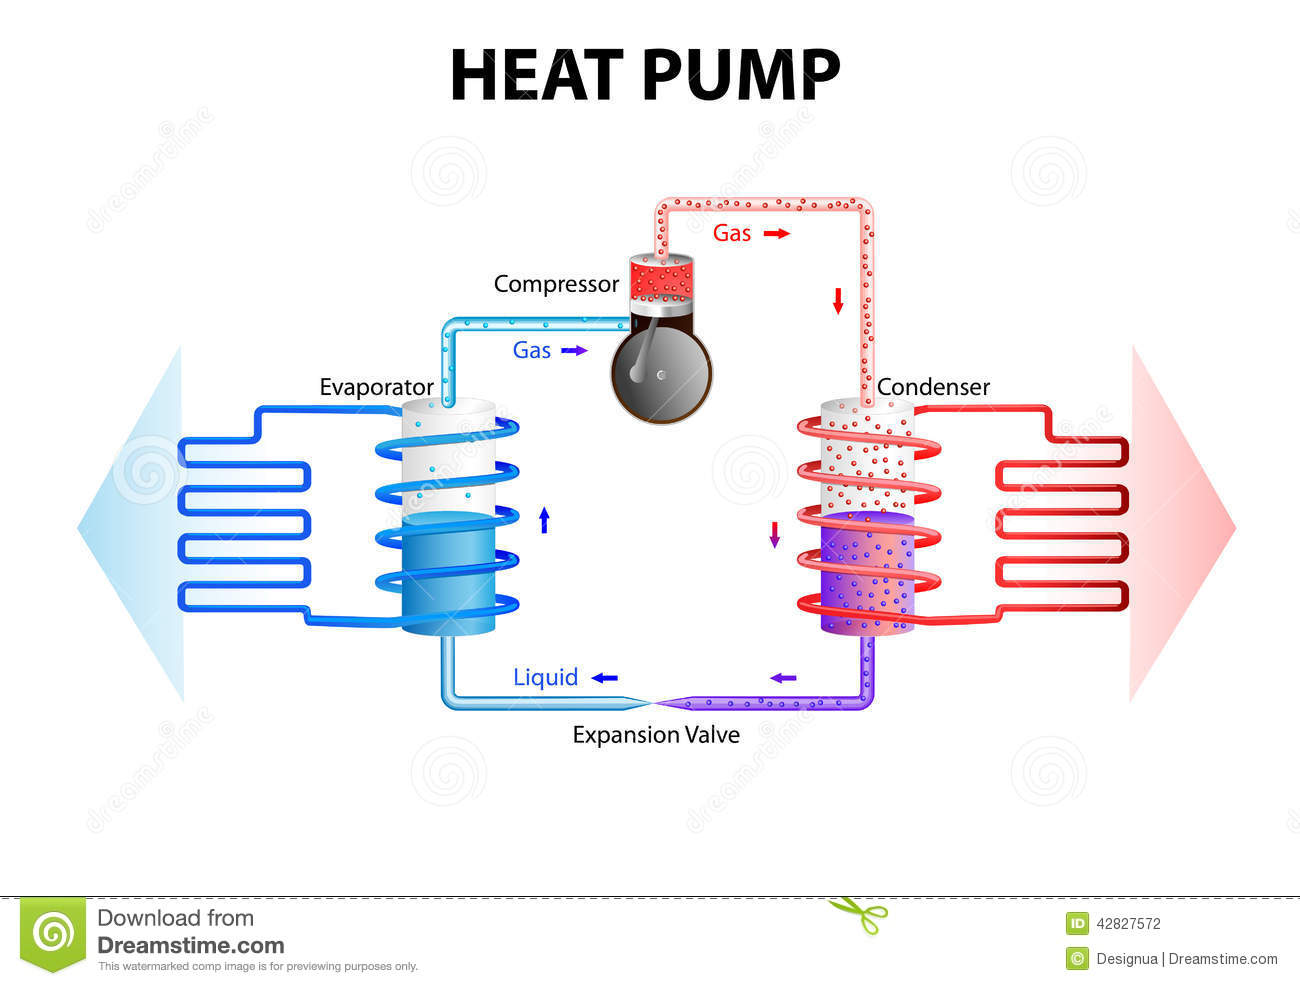 heat pump cooling system works extracting energy stored ground water converts building heating pumps 42827572 how a air conditioner works grihon com ac, coolers & devices how does air conditioning work diagram at cos-gaming.co